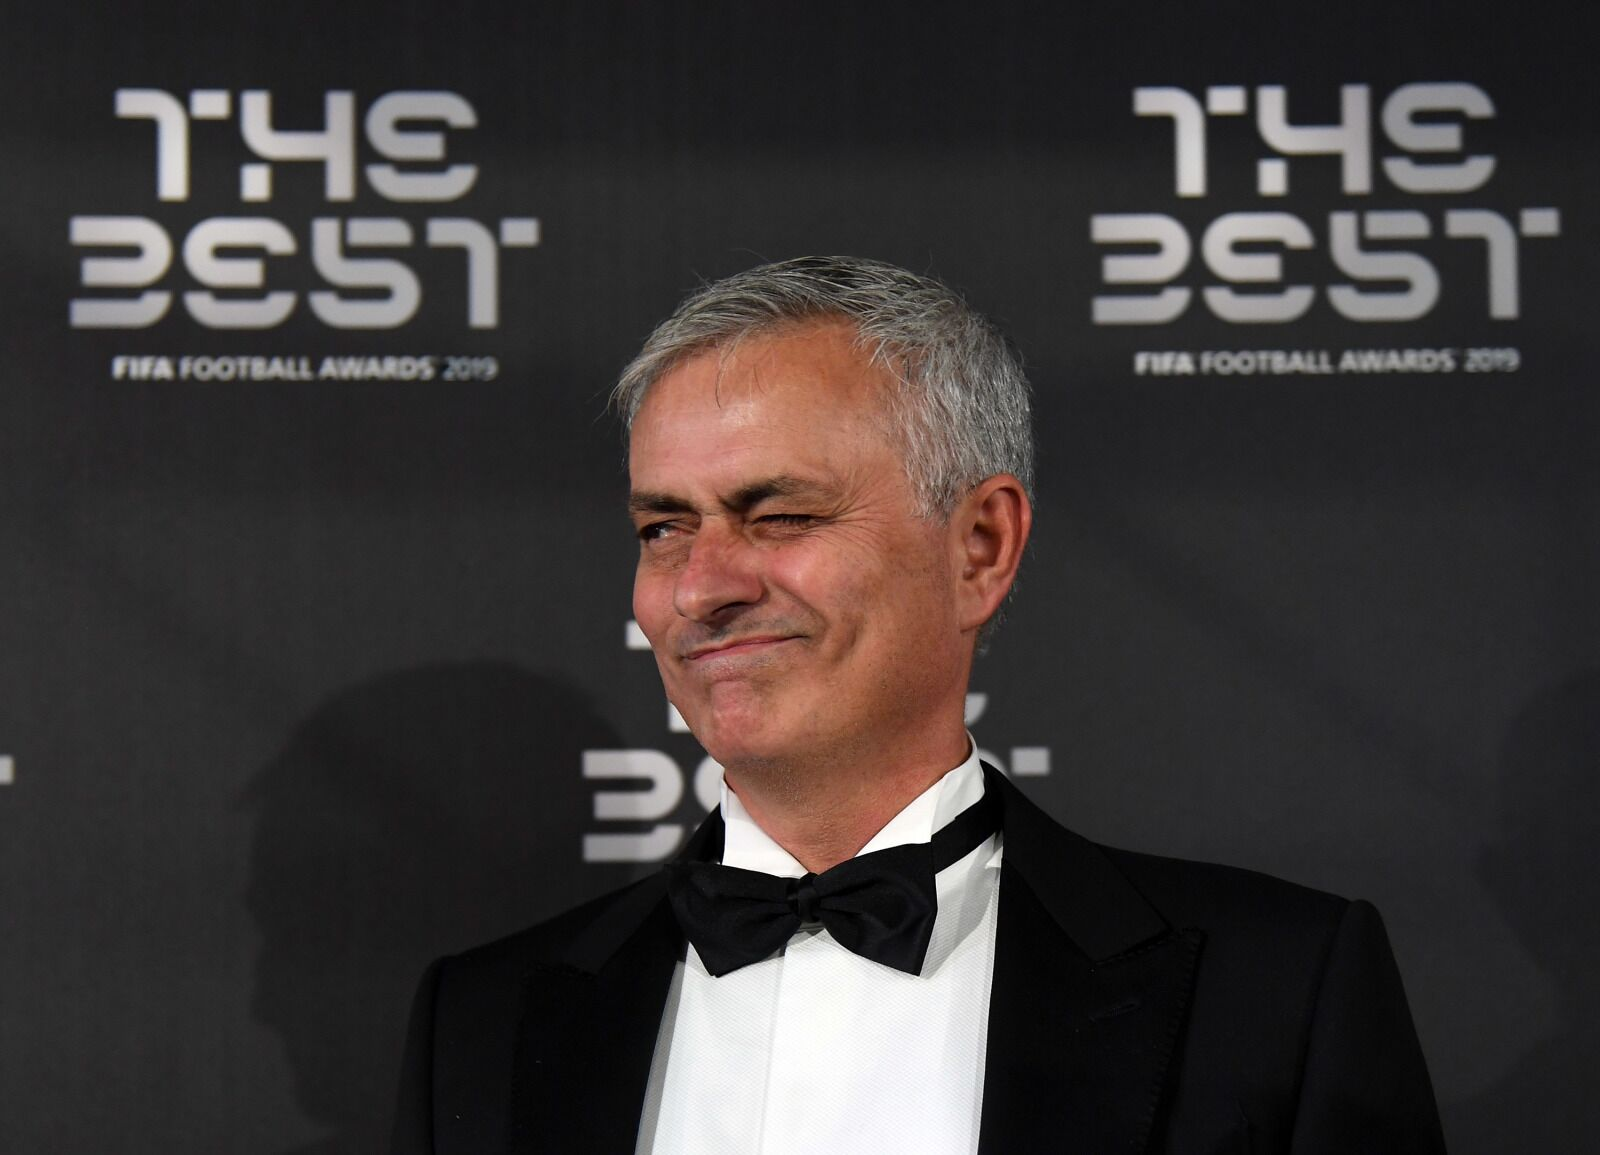 Jose Mourinho already being lined up as Tottenham's next manager